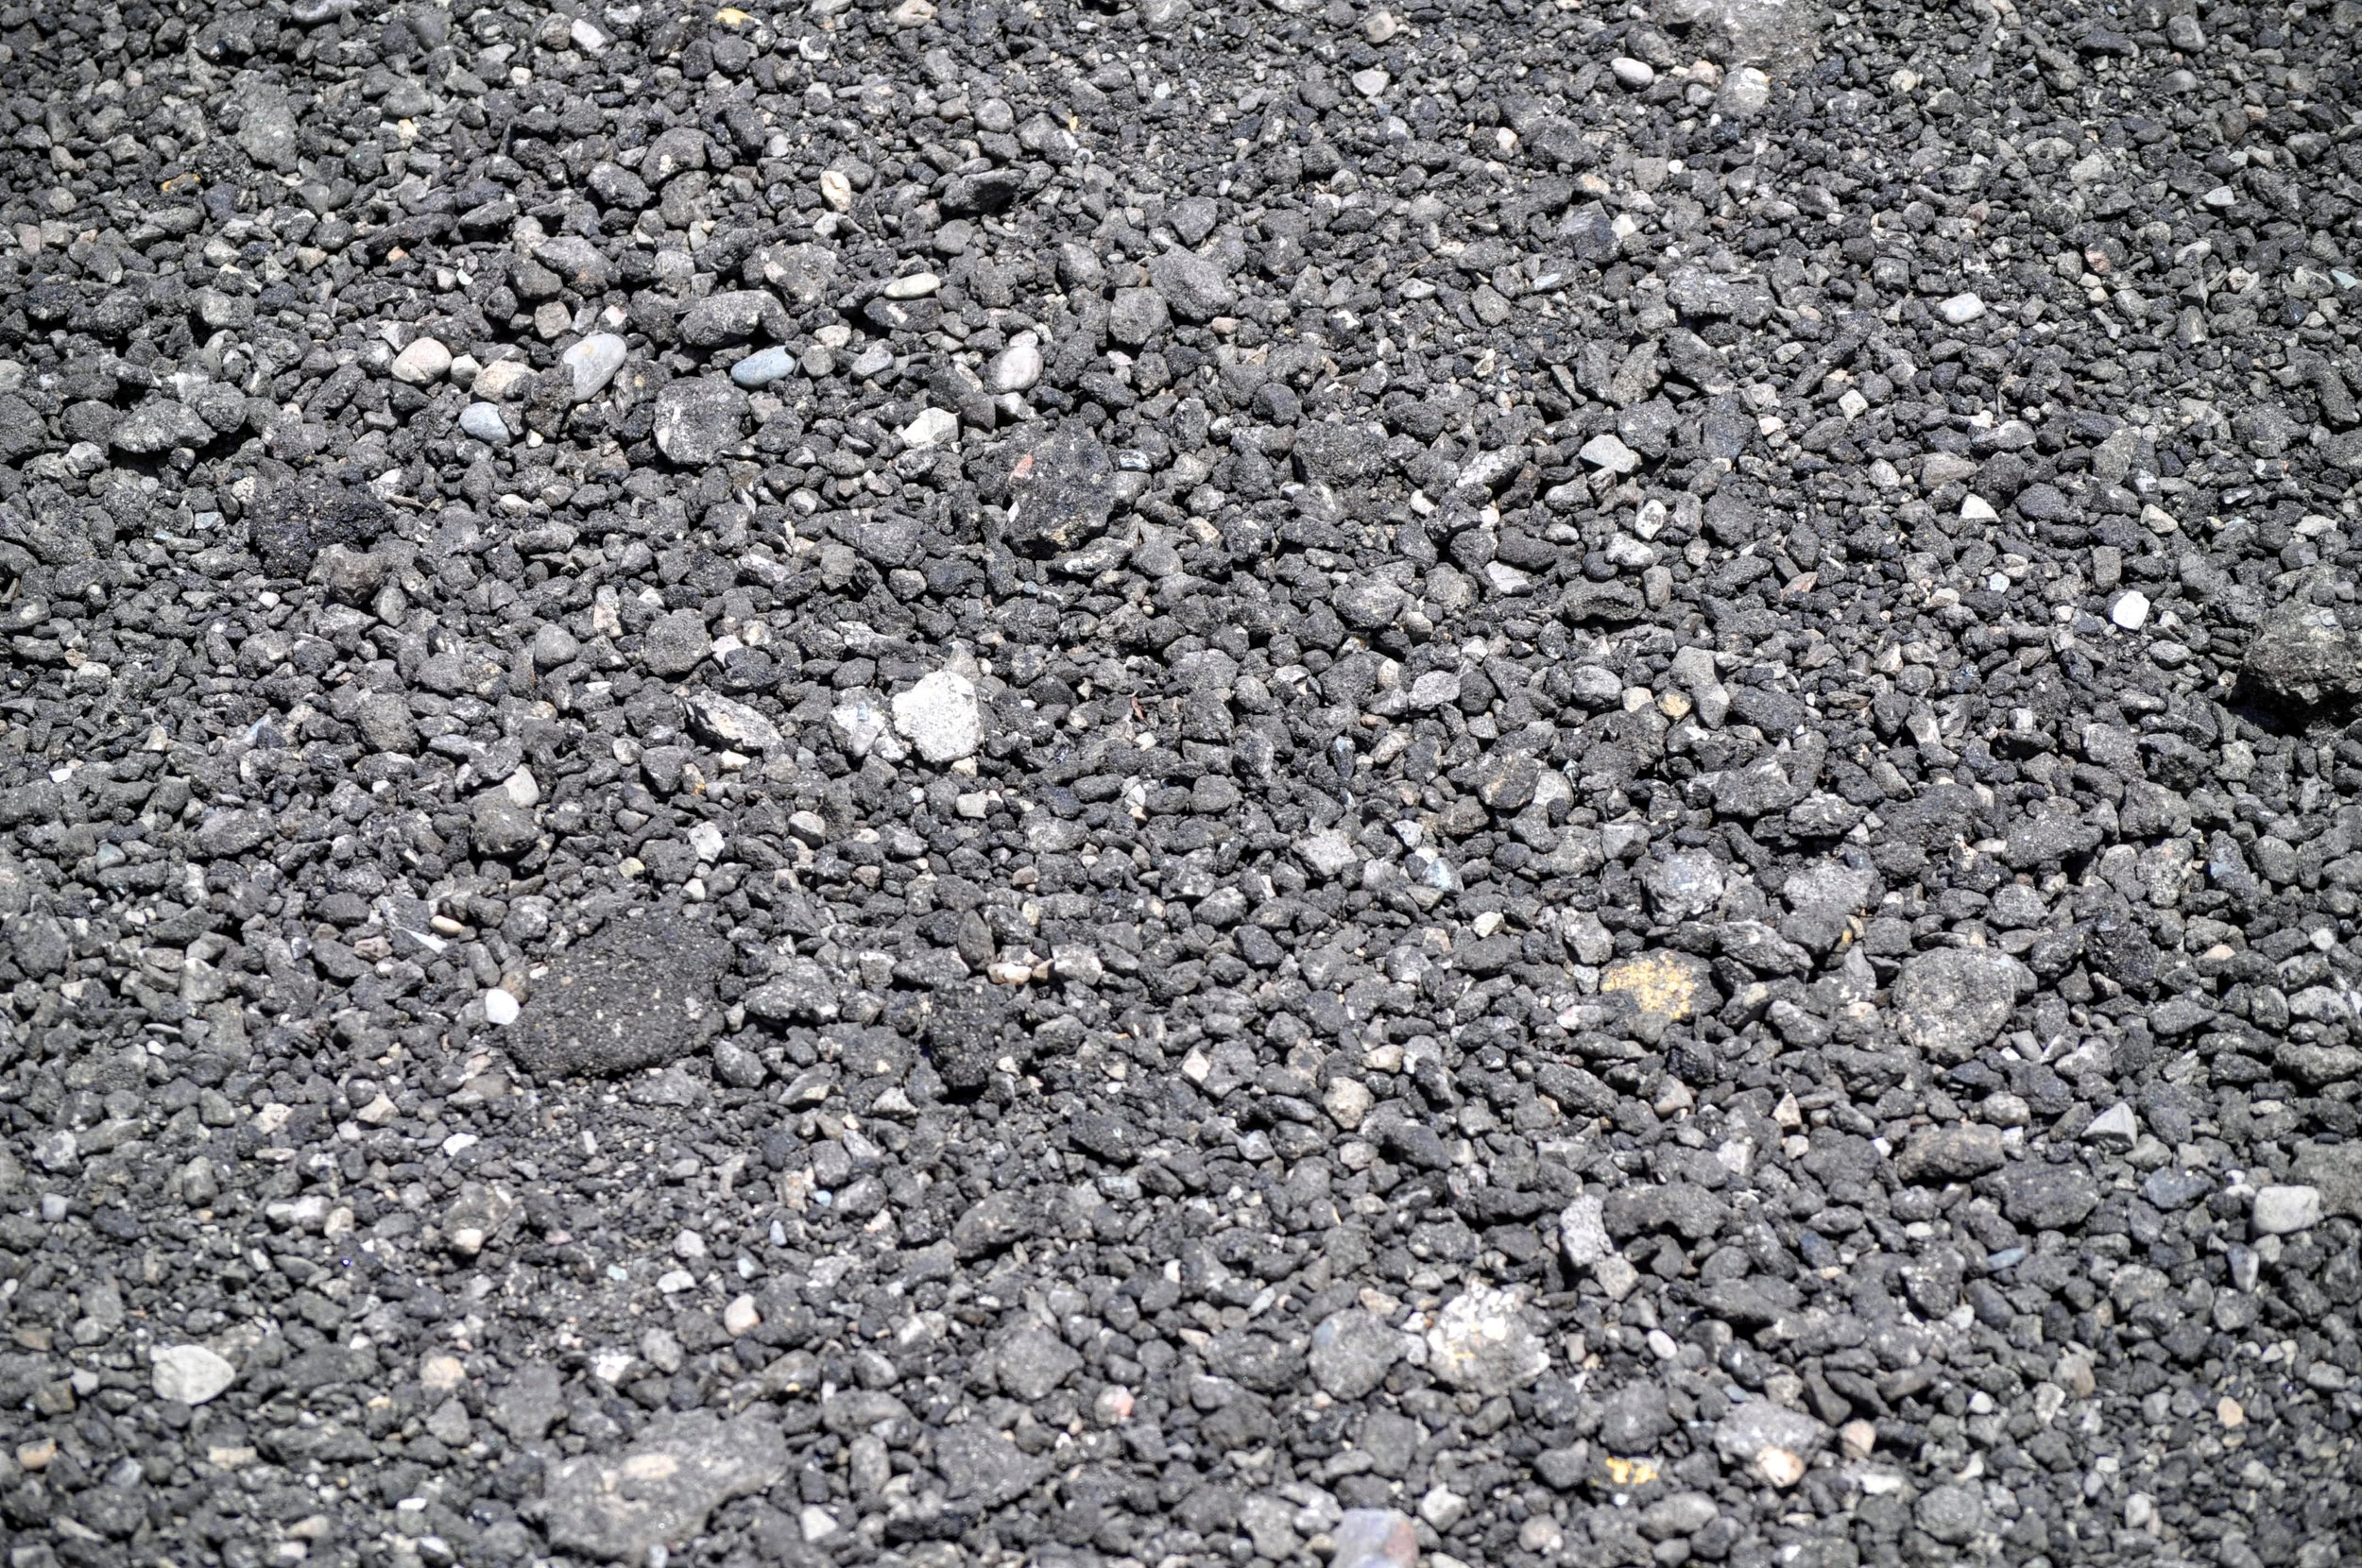 Asphalt Millings  Ground up and recycled asphalt - often used in place of gravel for driveways and other projects.